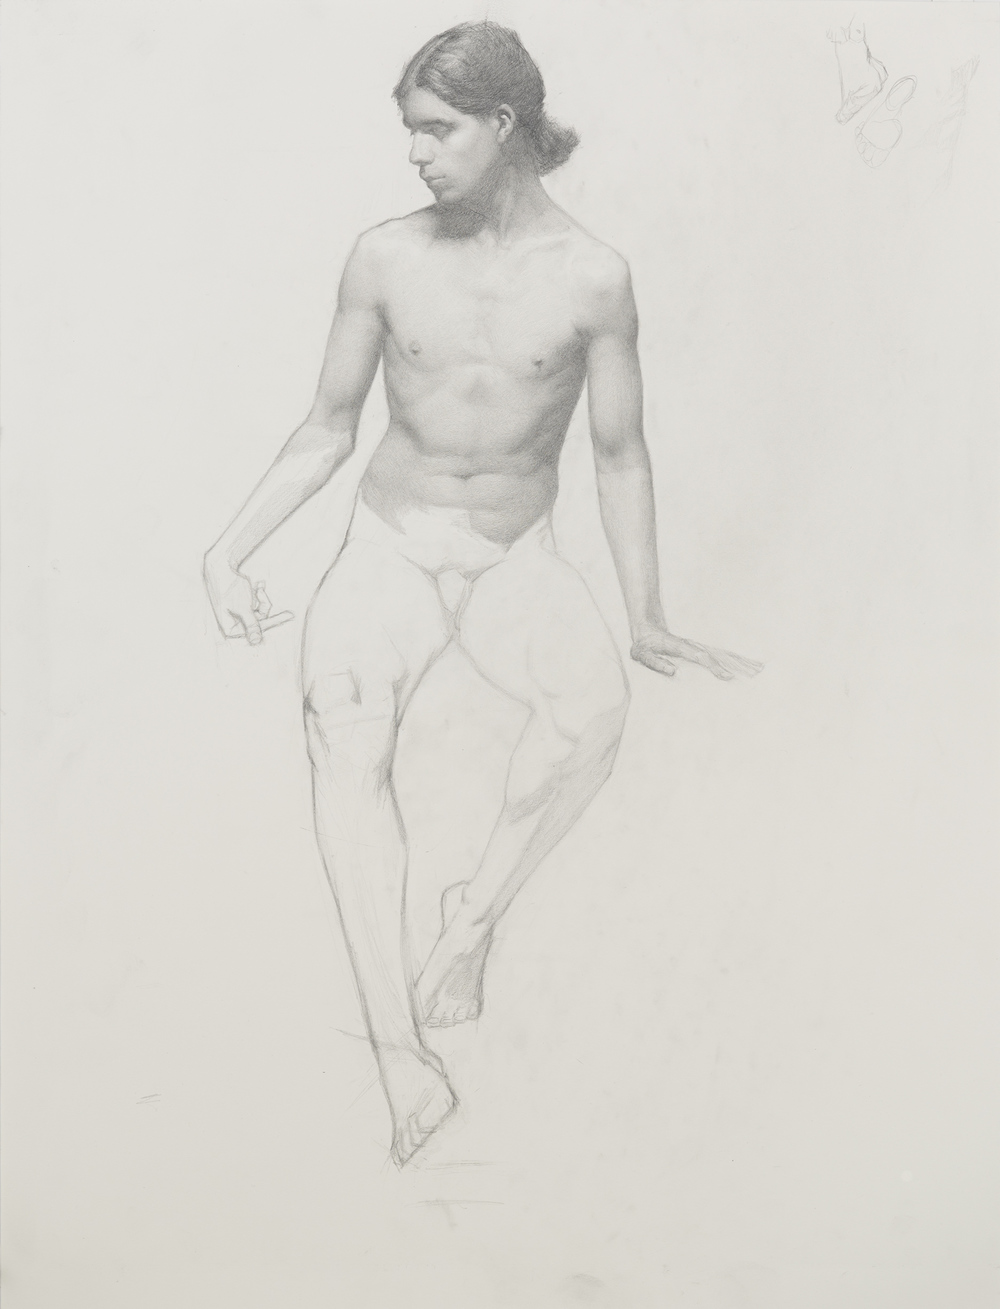 Seated Male Nude. 18x24. Graphite on paper.